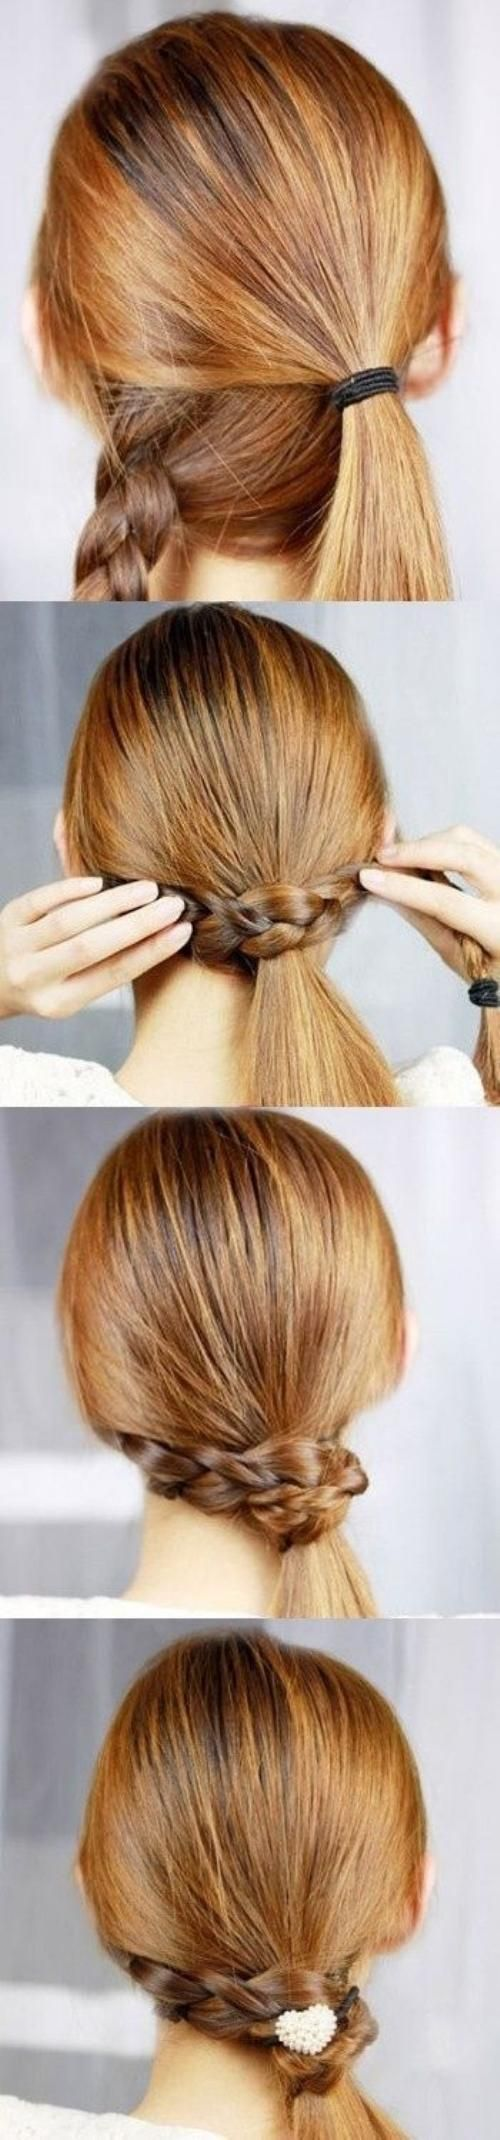 Cute and easy hair designs pinterest hair styles hair and